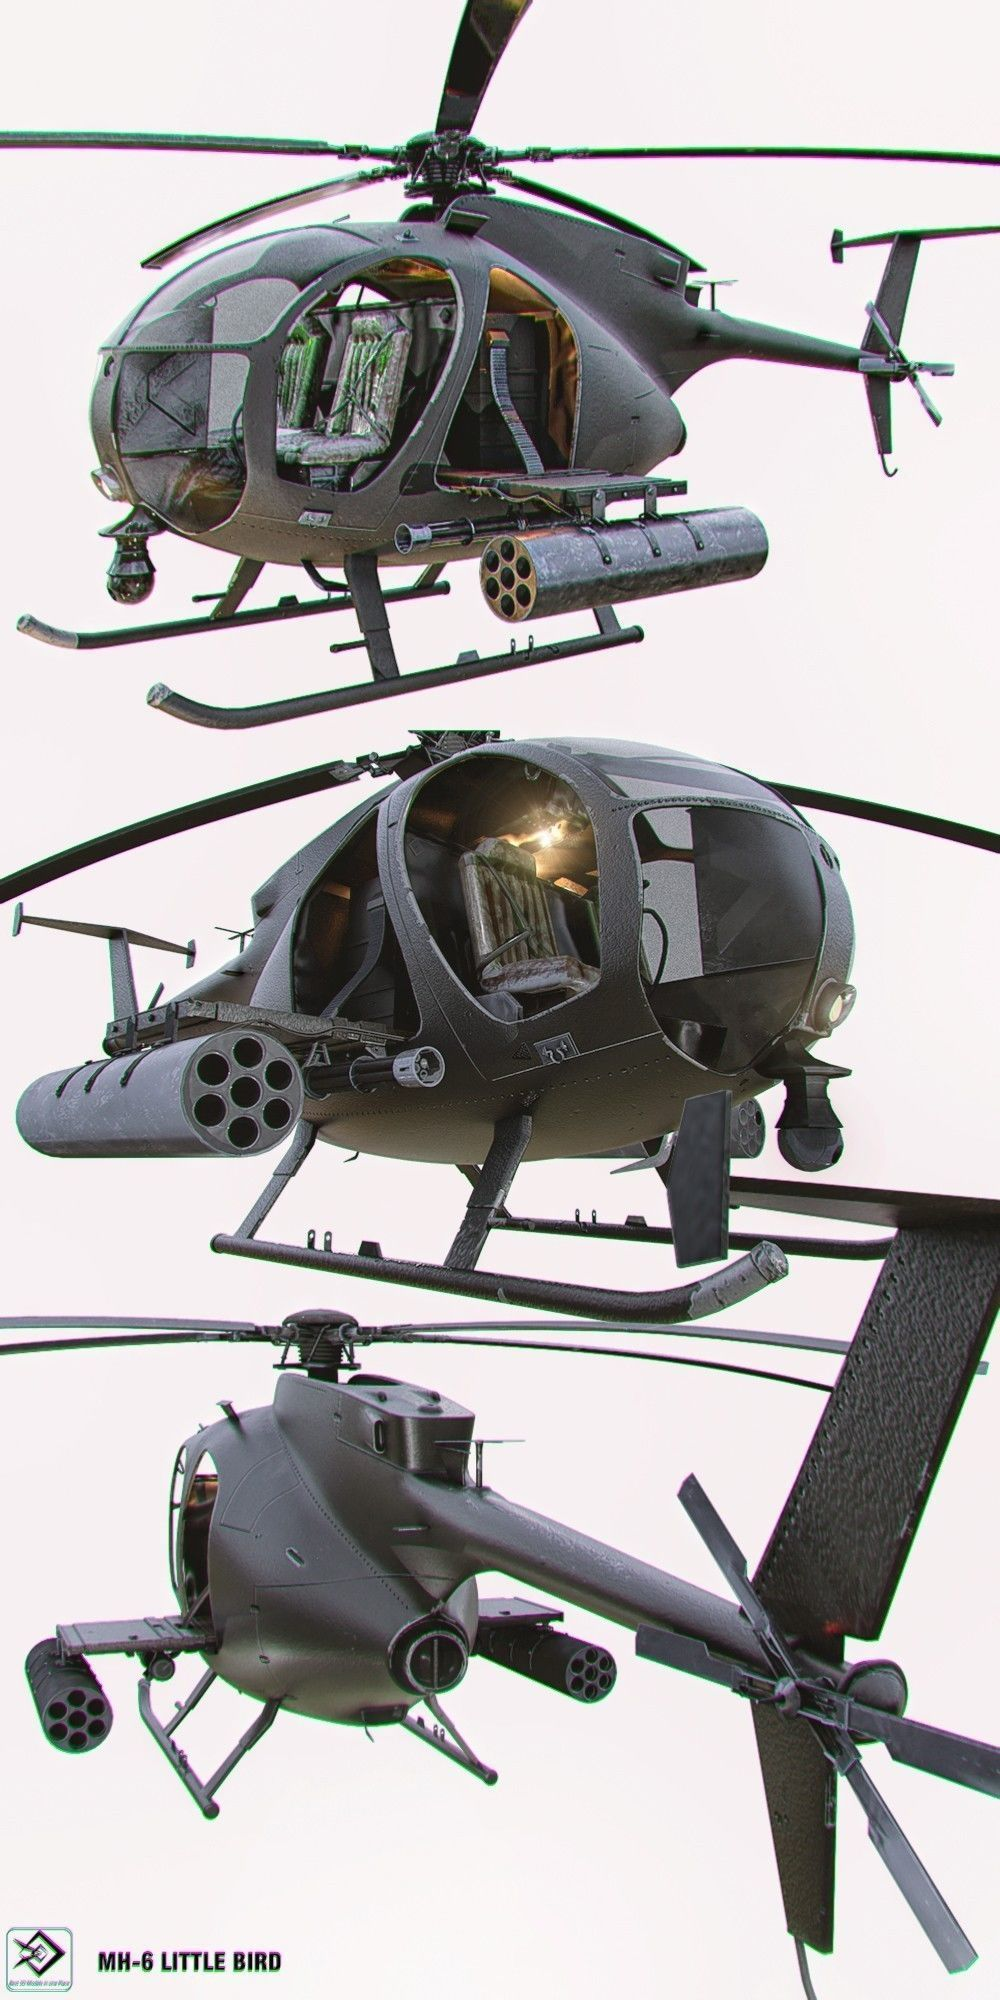 MH-6 Little Bird Helicopter